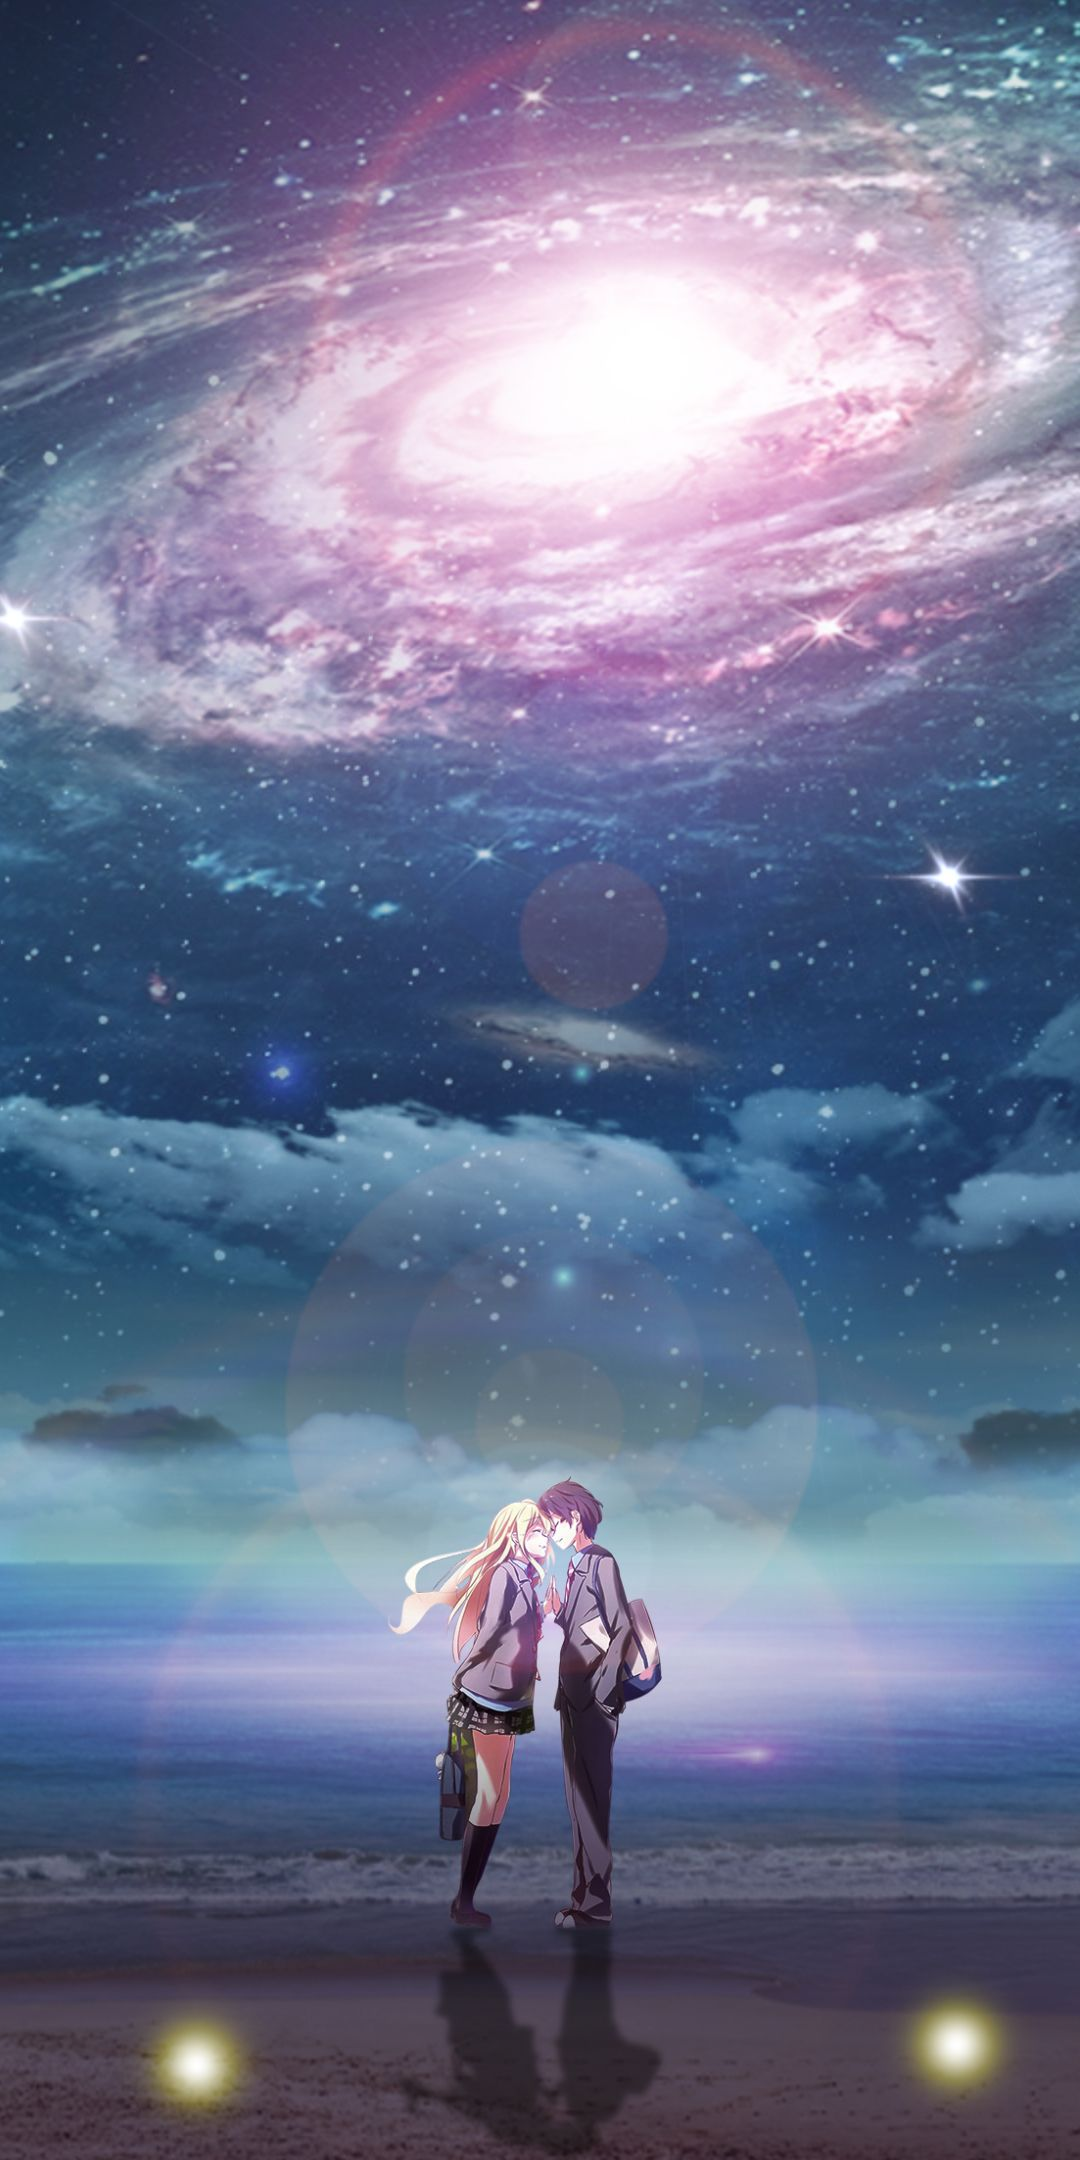 Download this Wallpaper Anime/Your Lie In April (1080x2160